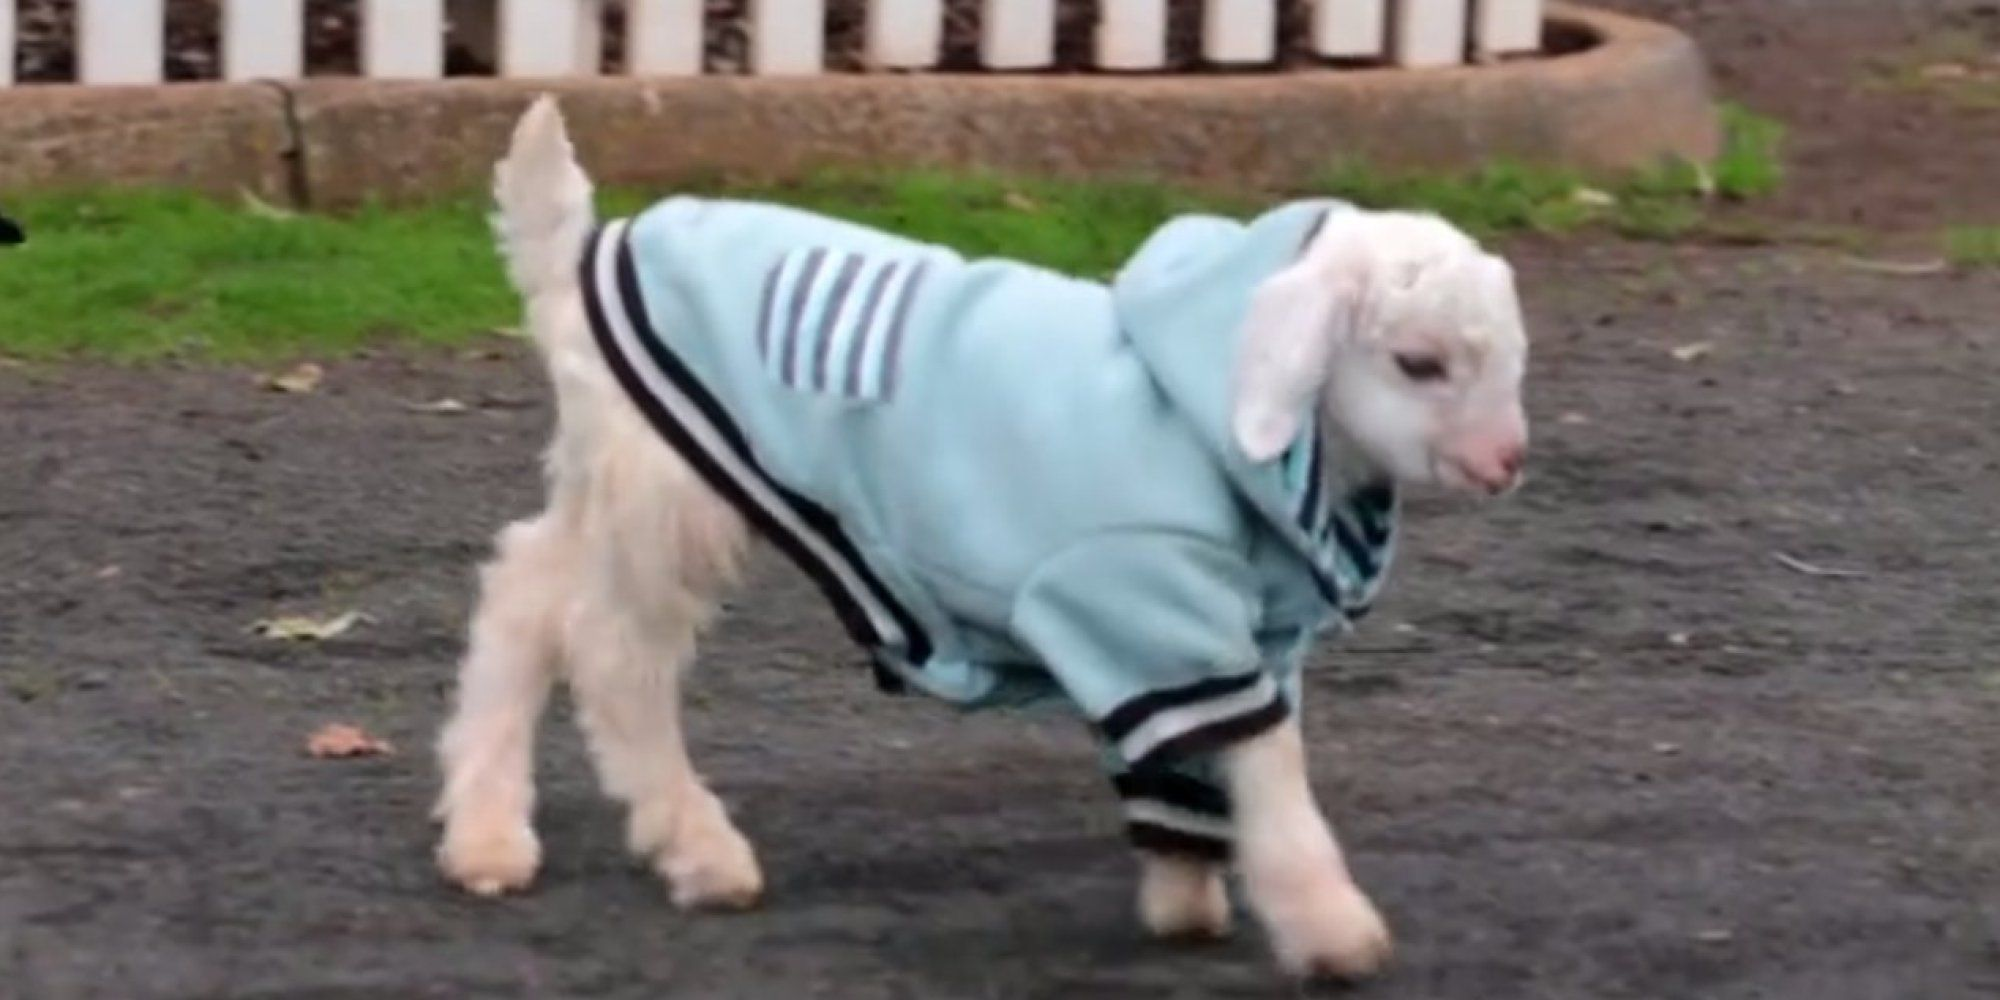 Frostie, Baby Goat Who Ditched His Wheelchair For Dancing, Is